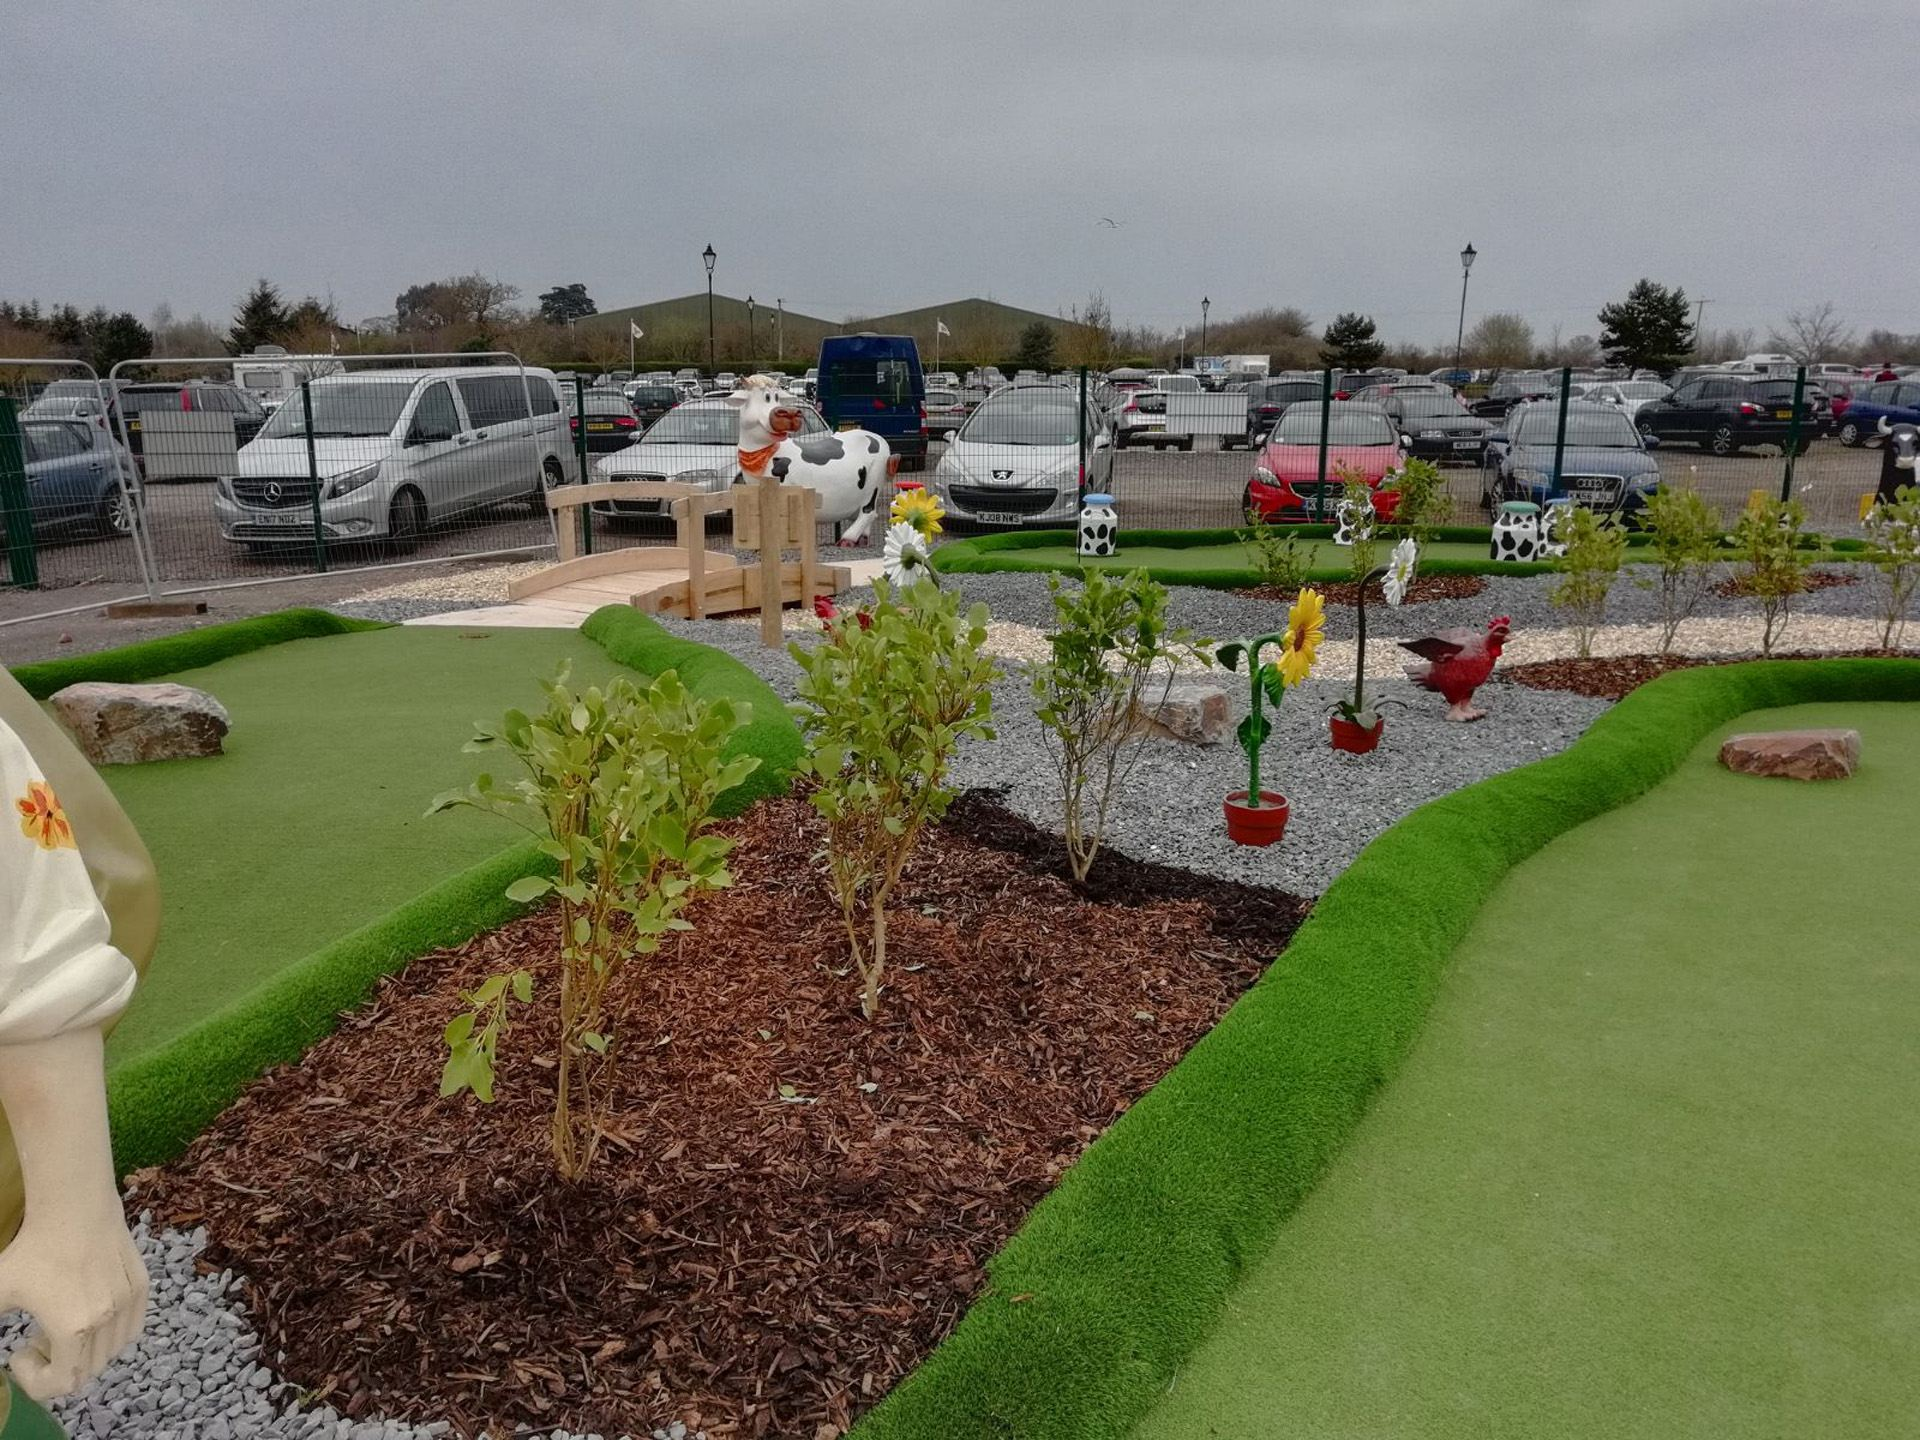 PPG - Adventure Golf with groundworks, artificial grass and props